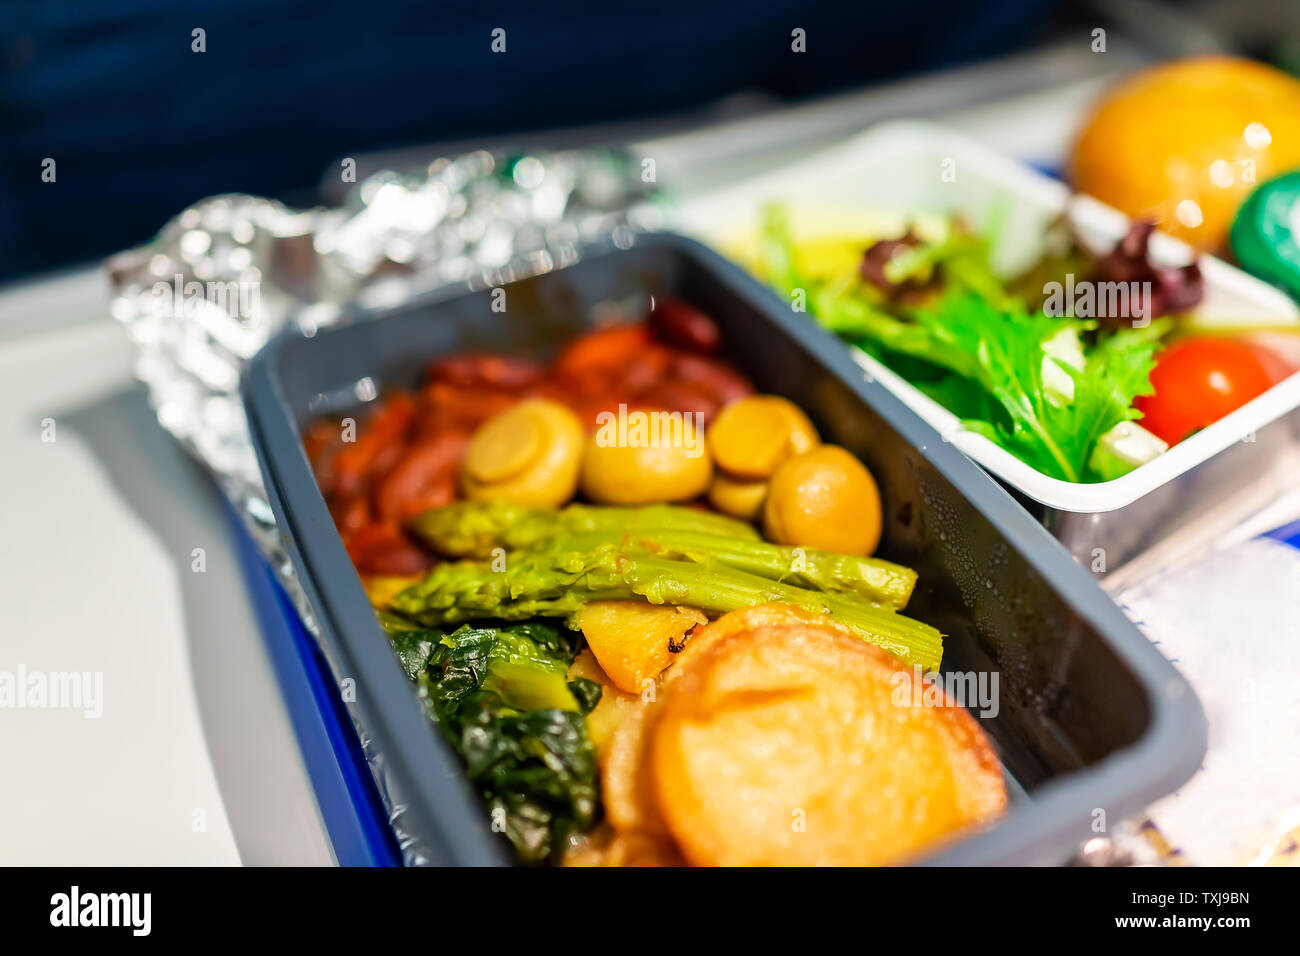 Healthy vegan vegetarian food hot vgml meal on airplane flight with potato mushrooms asparagus vegetables on tray with salad - Stock Image